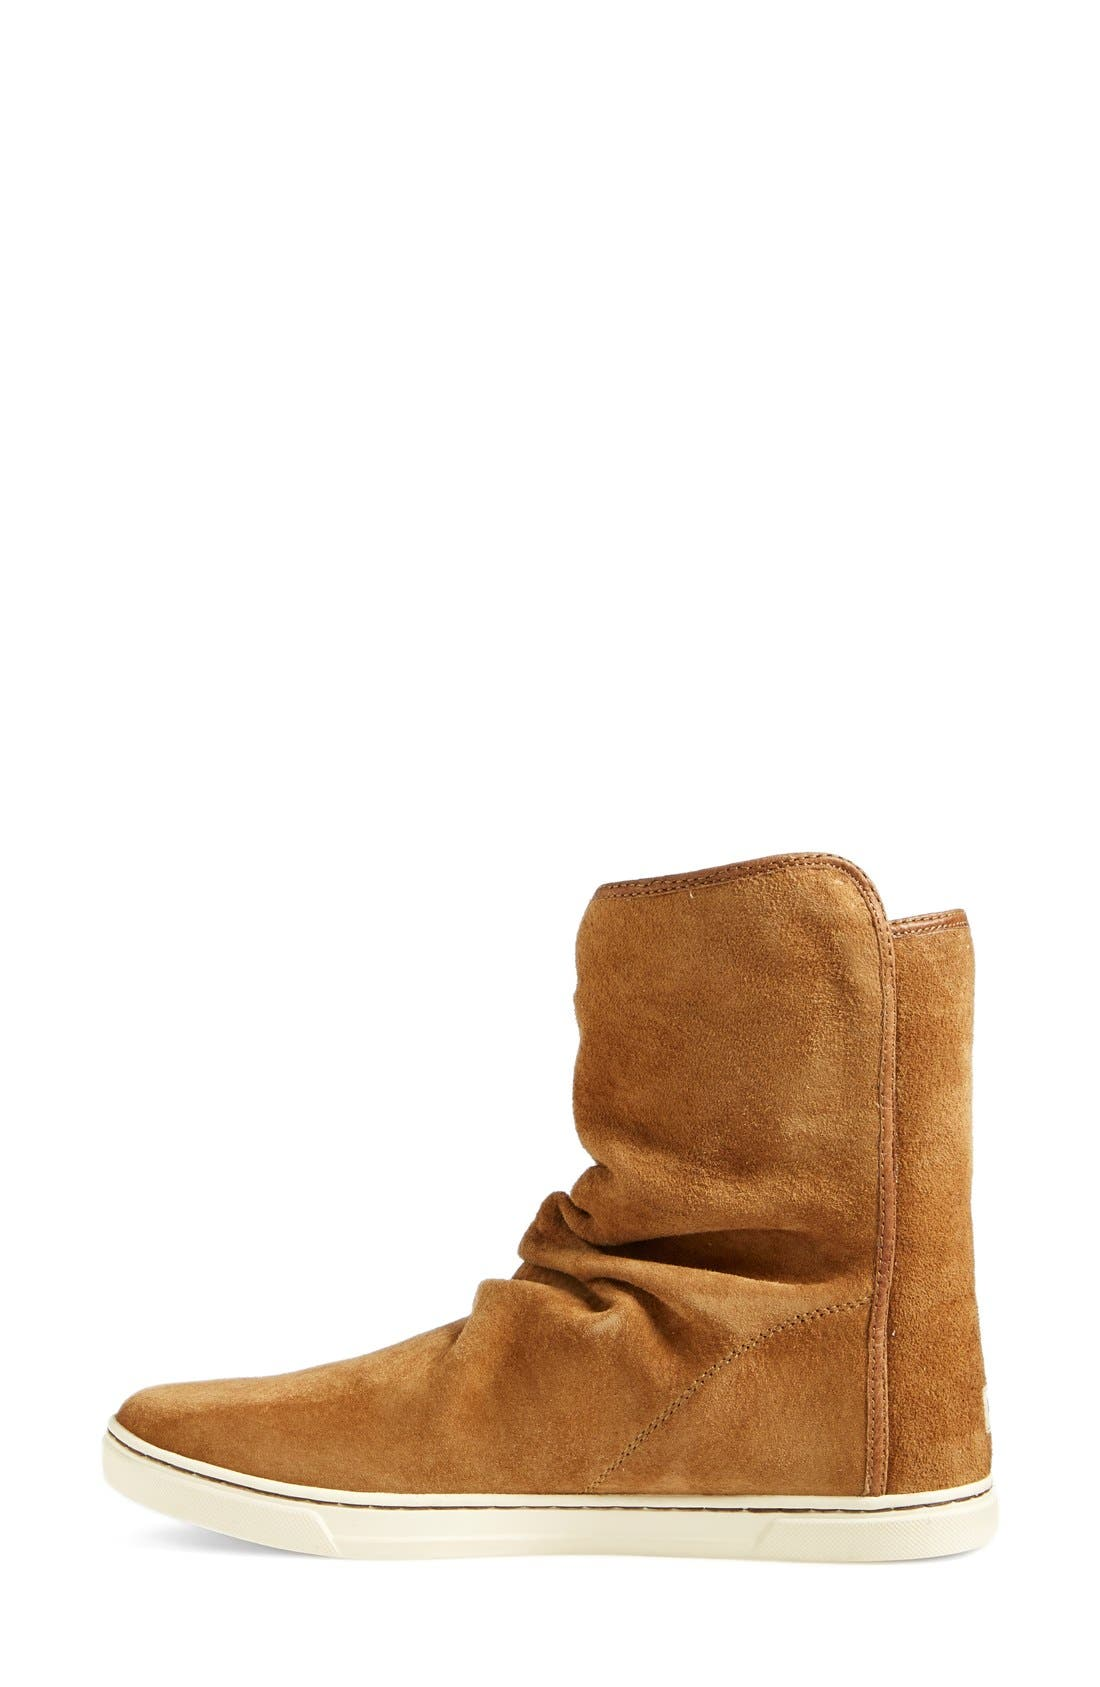 Australia 'Becky' Water Resistant Suede Boot,                             Alternate thumbnail 10, color,